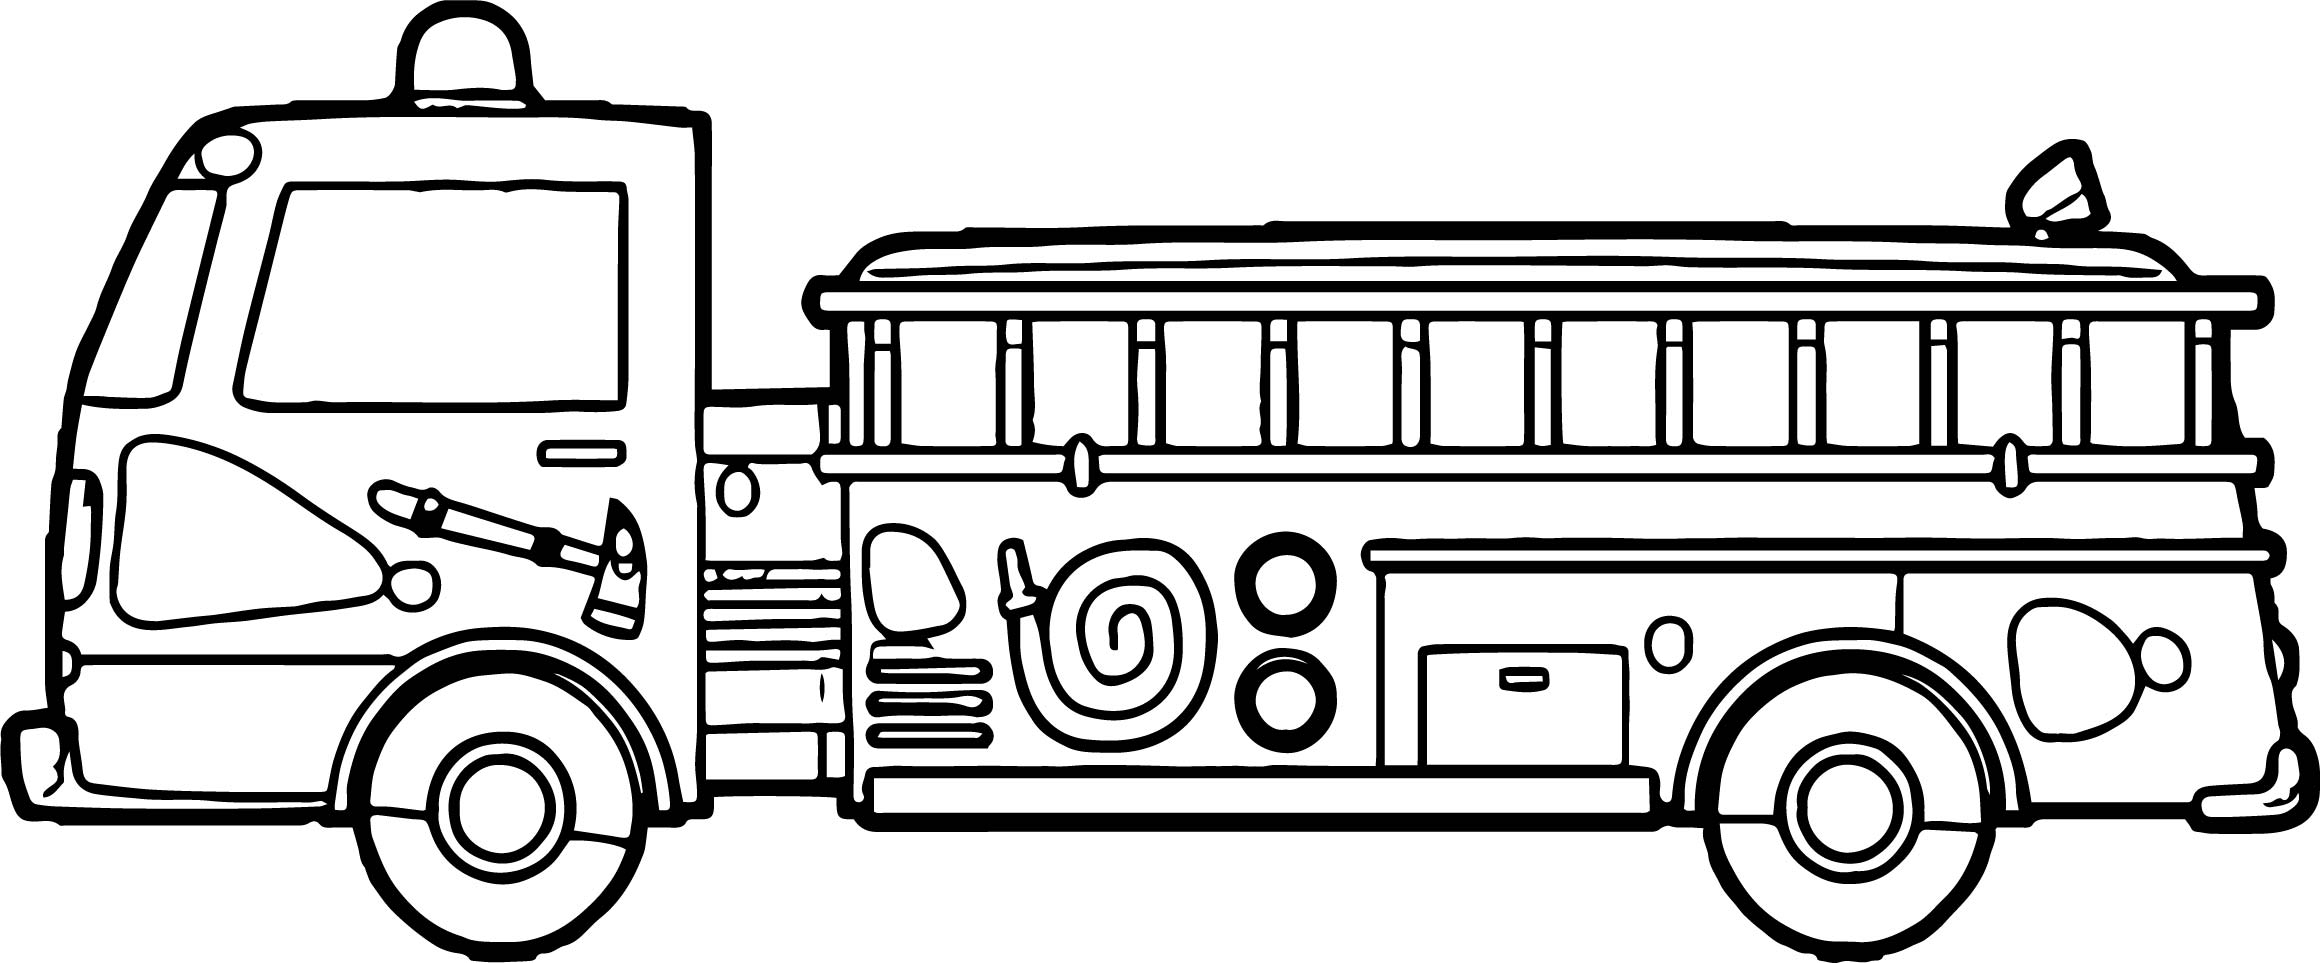 Fire Truck Tall Side Coloring Page